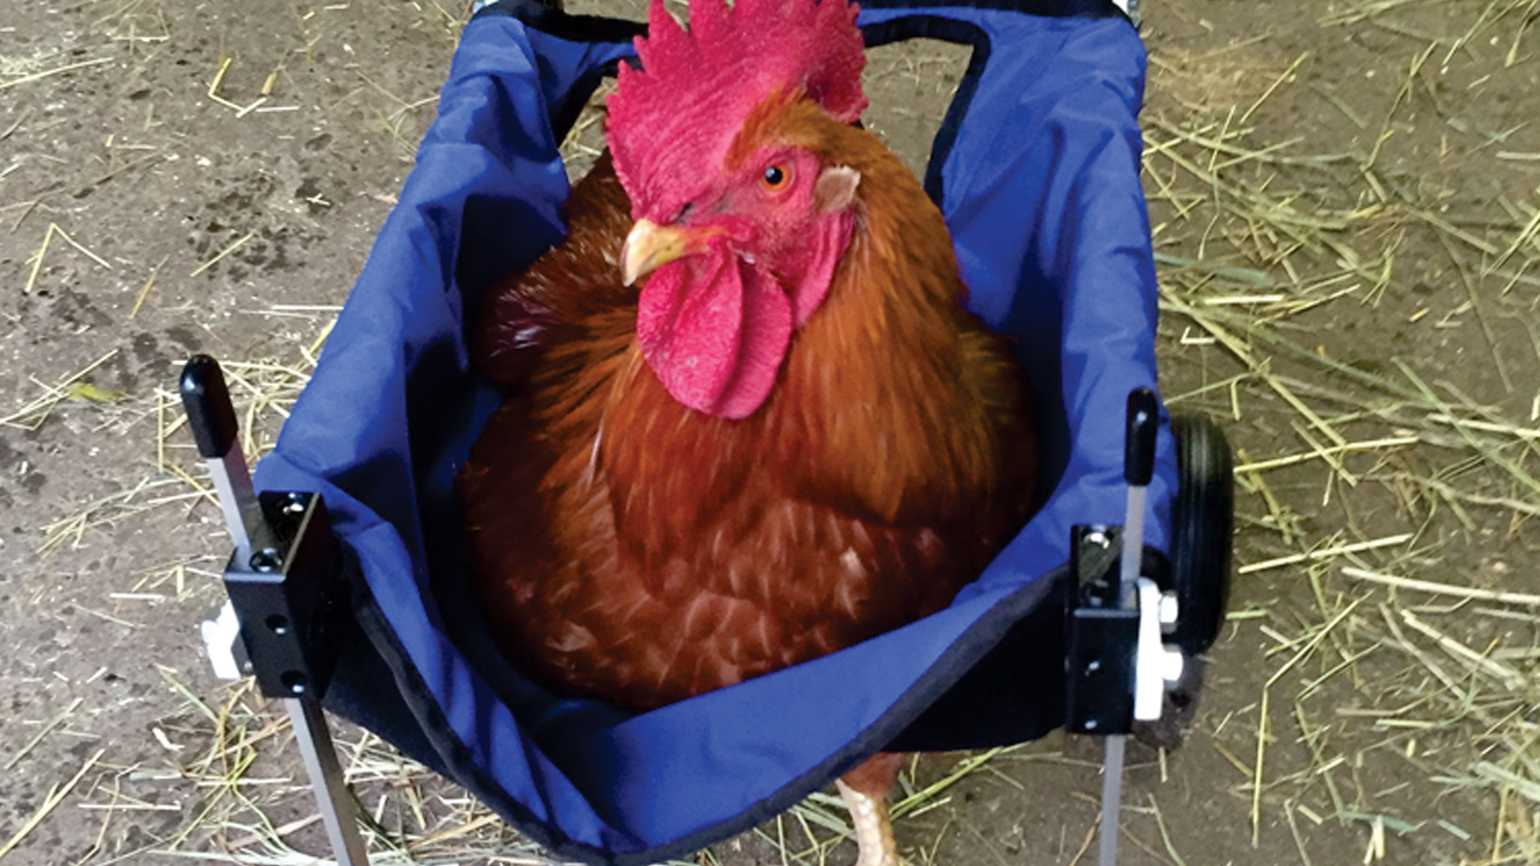 Louise the rooster in a wheelchair.